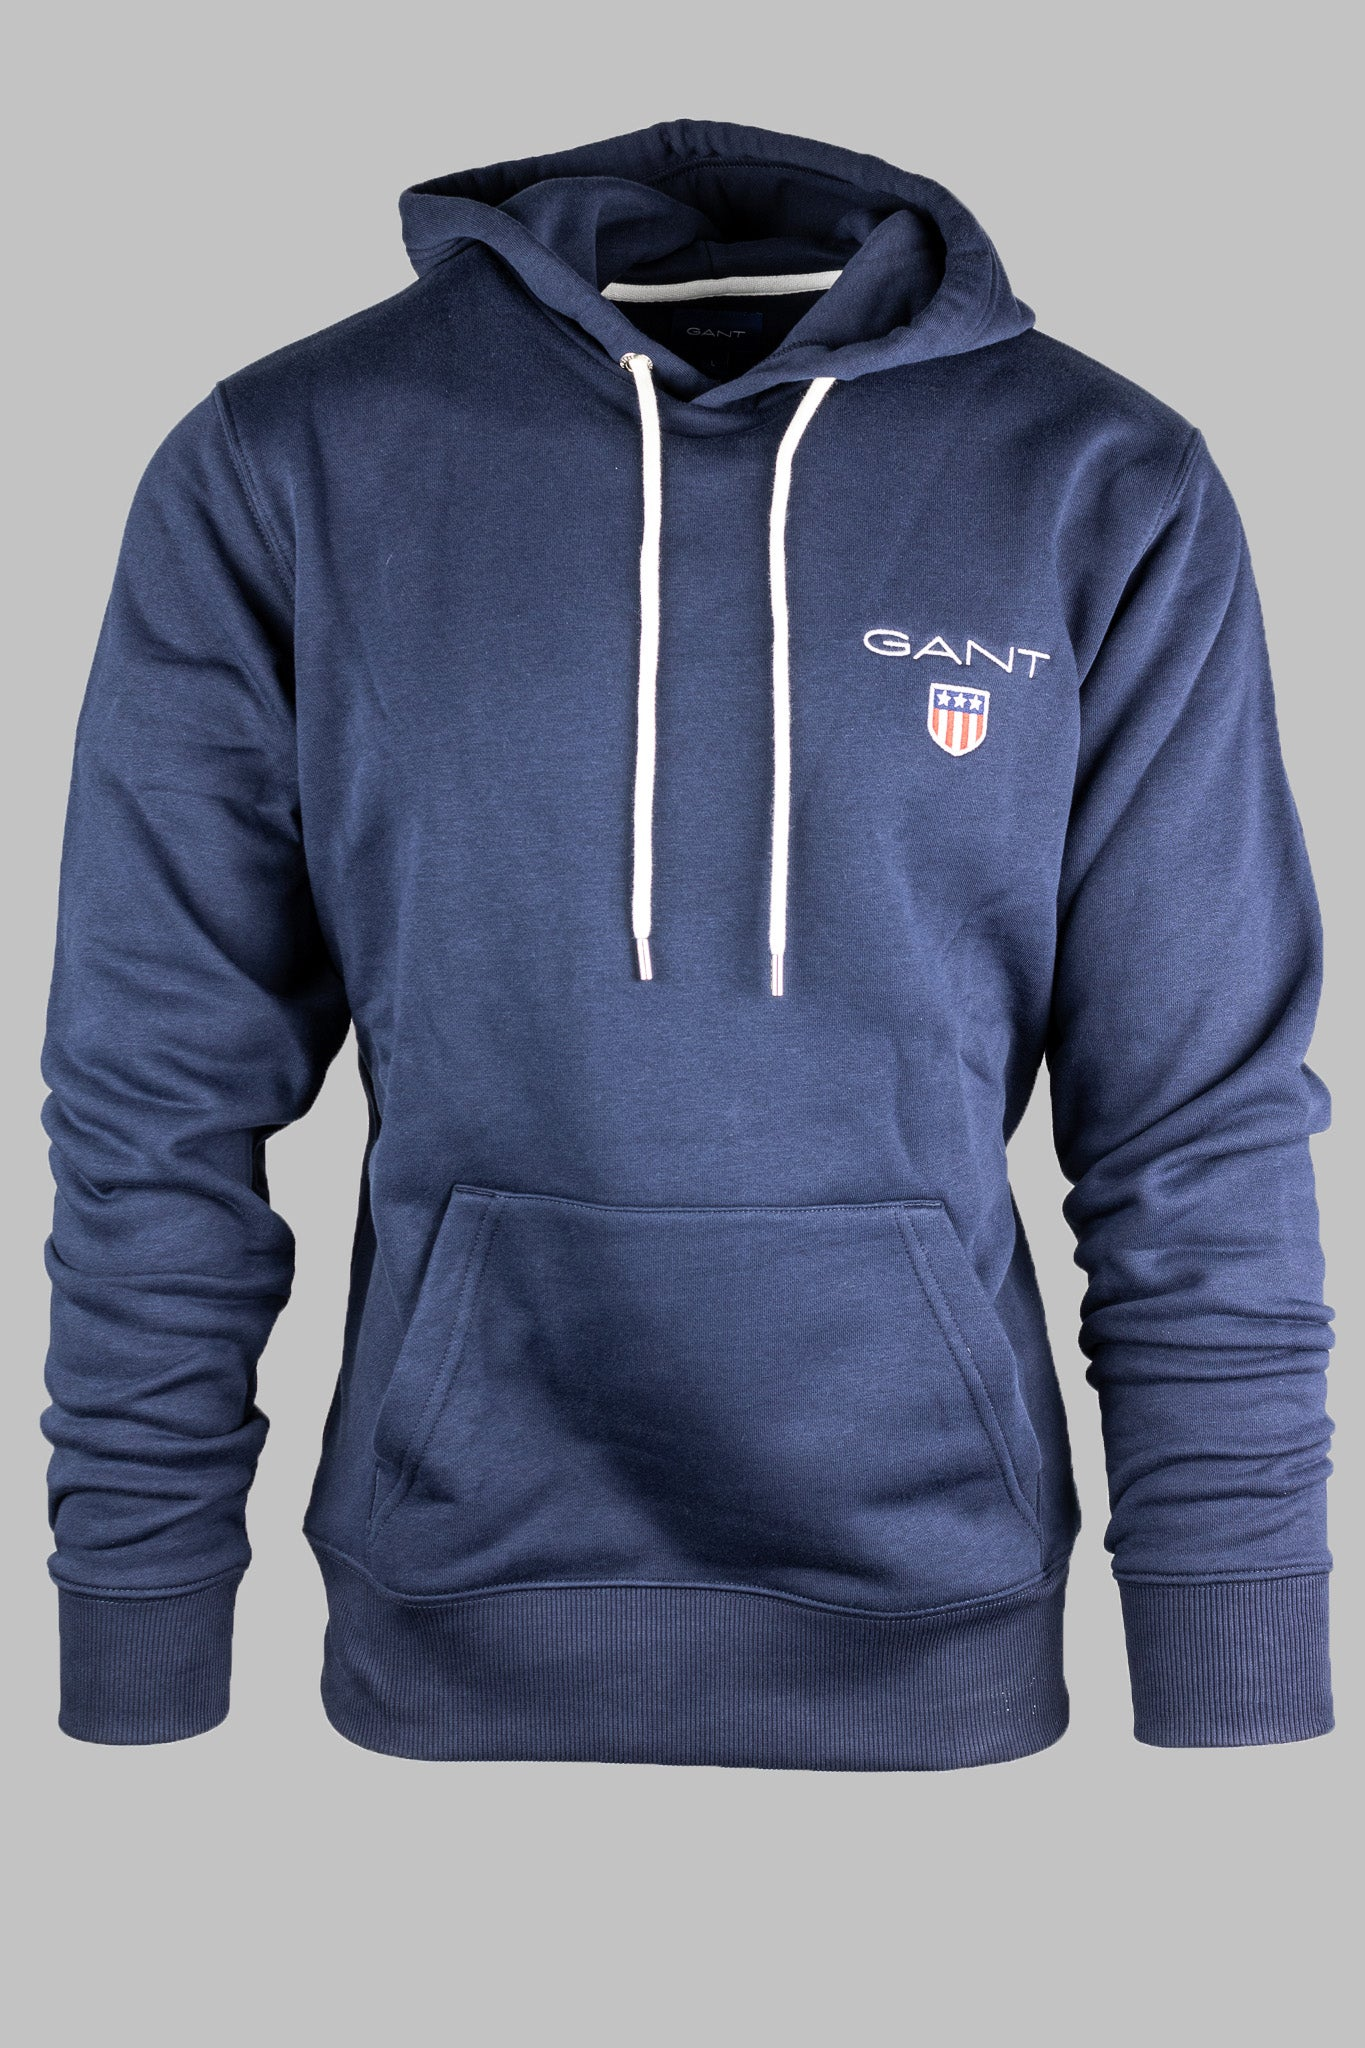 Gant 2057003 Navy Hoody for sale online ireland